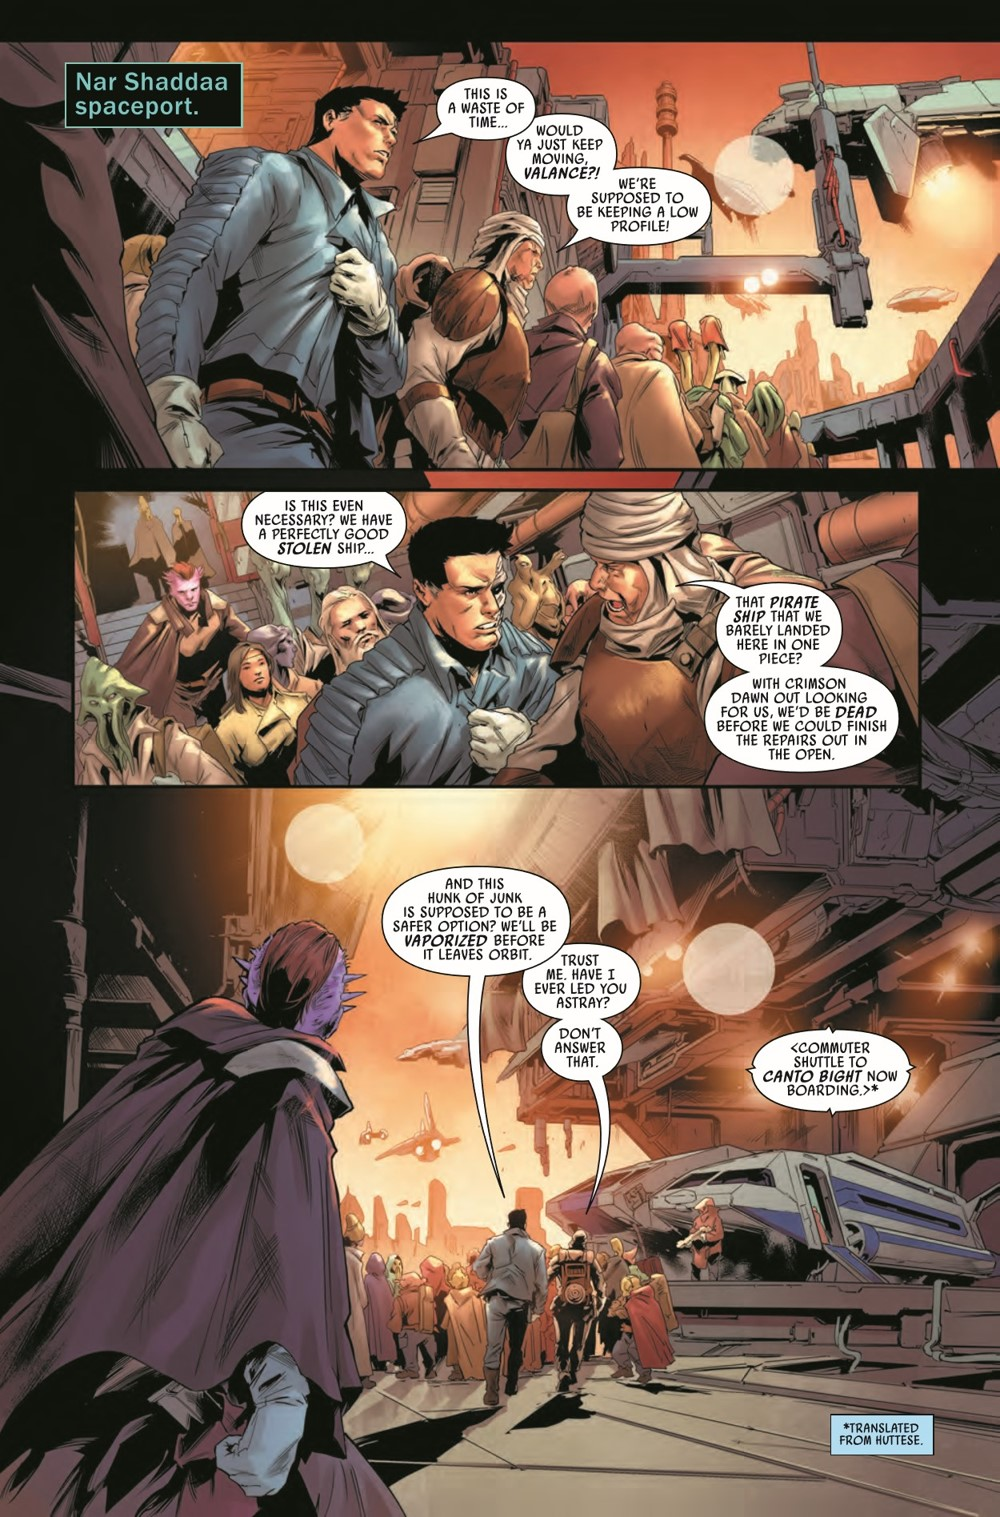 STWBOUNTYHUNT2020015_Preview-6 ComicList Previews: STAR WARS BOUNTY HUNTERS #15